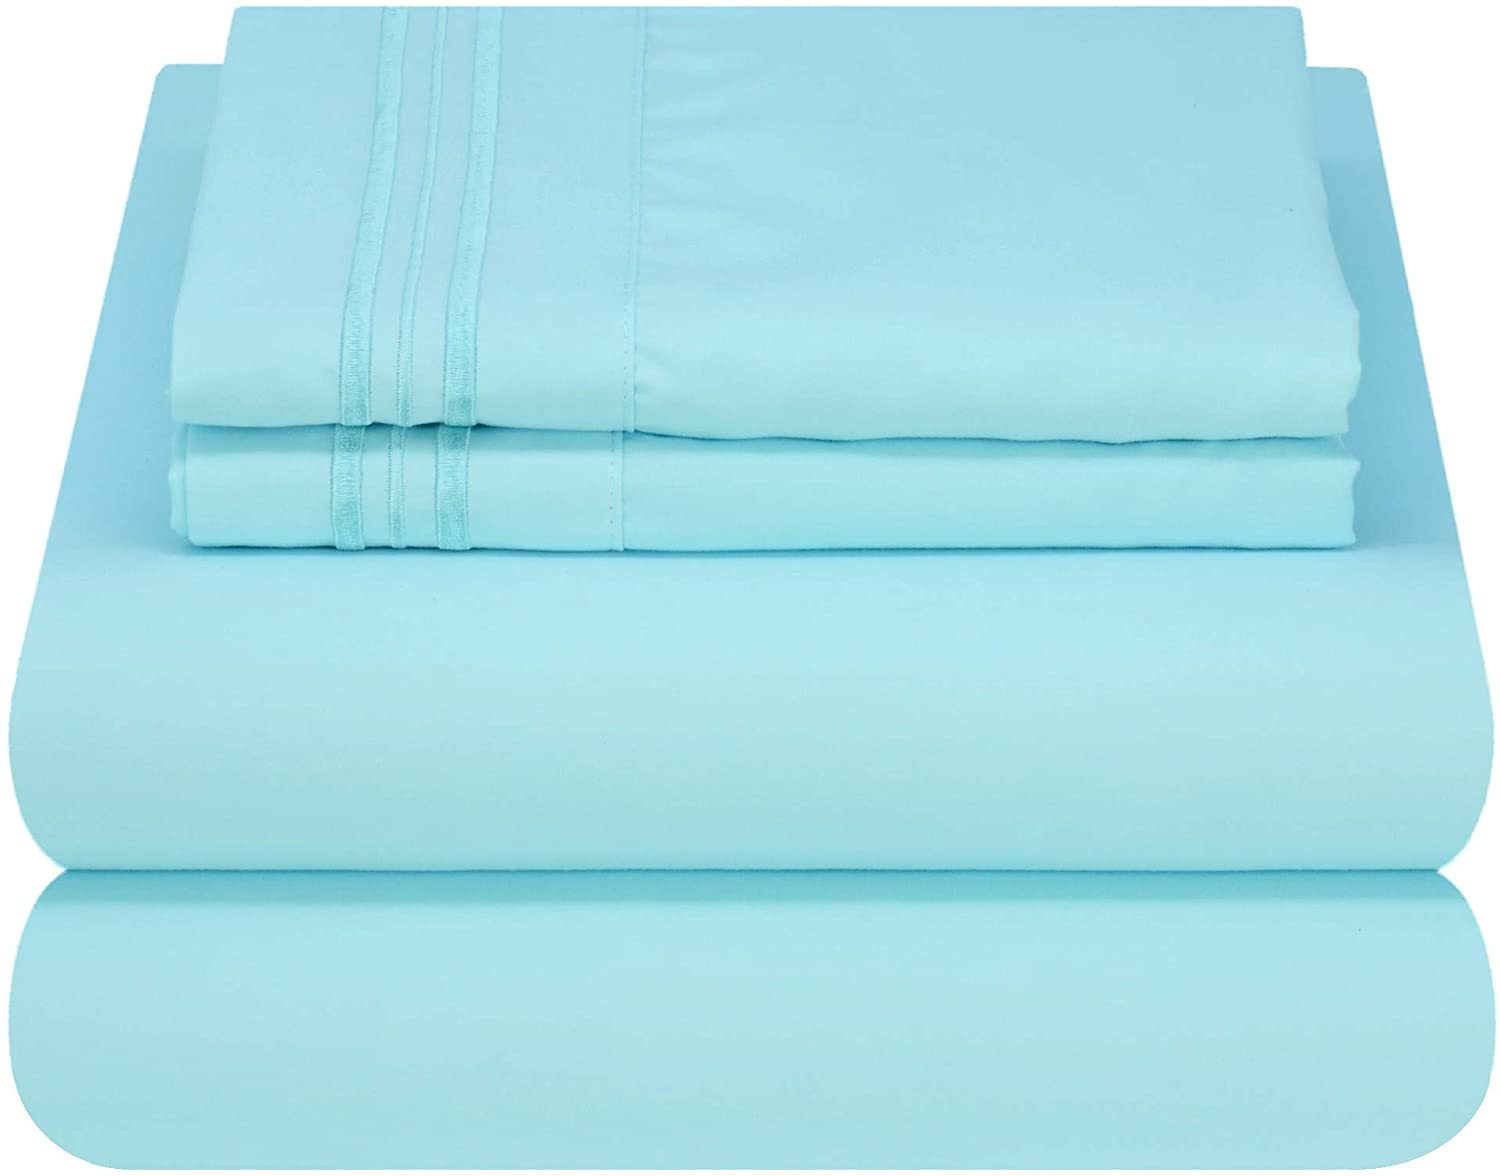 Mezzati Luxury Bed Sheet Set - Soft and Comfortable 1800 Prestige Collection - Brushed Microfiber Bedding (Light Blue, Full Size)